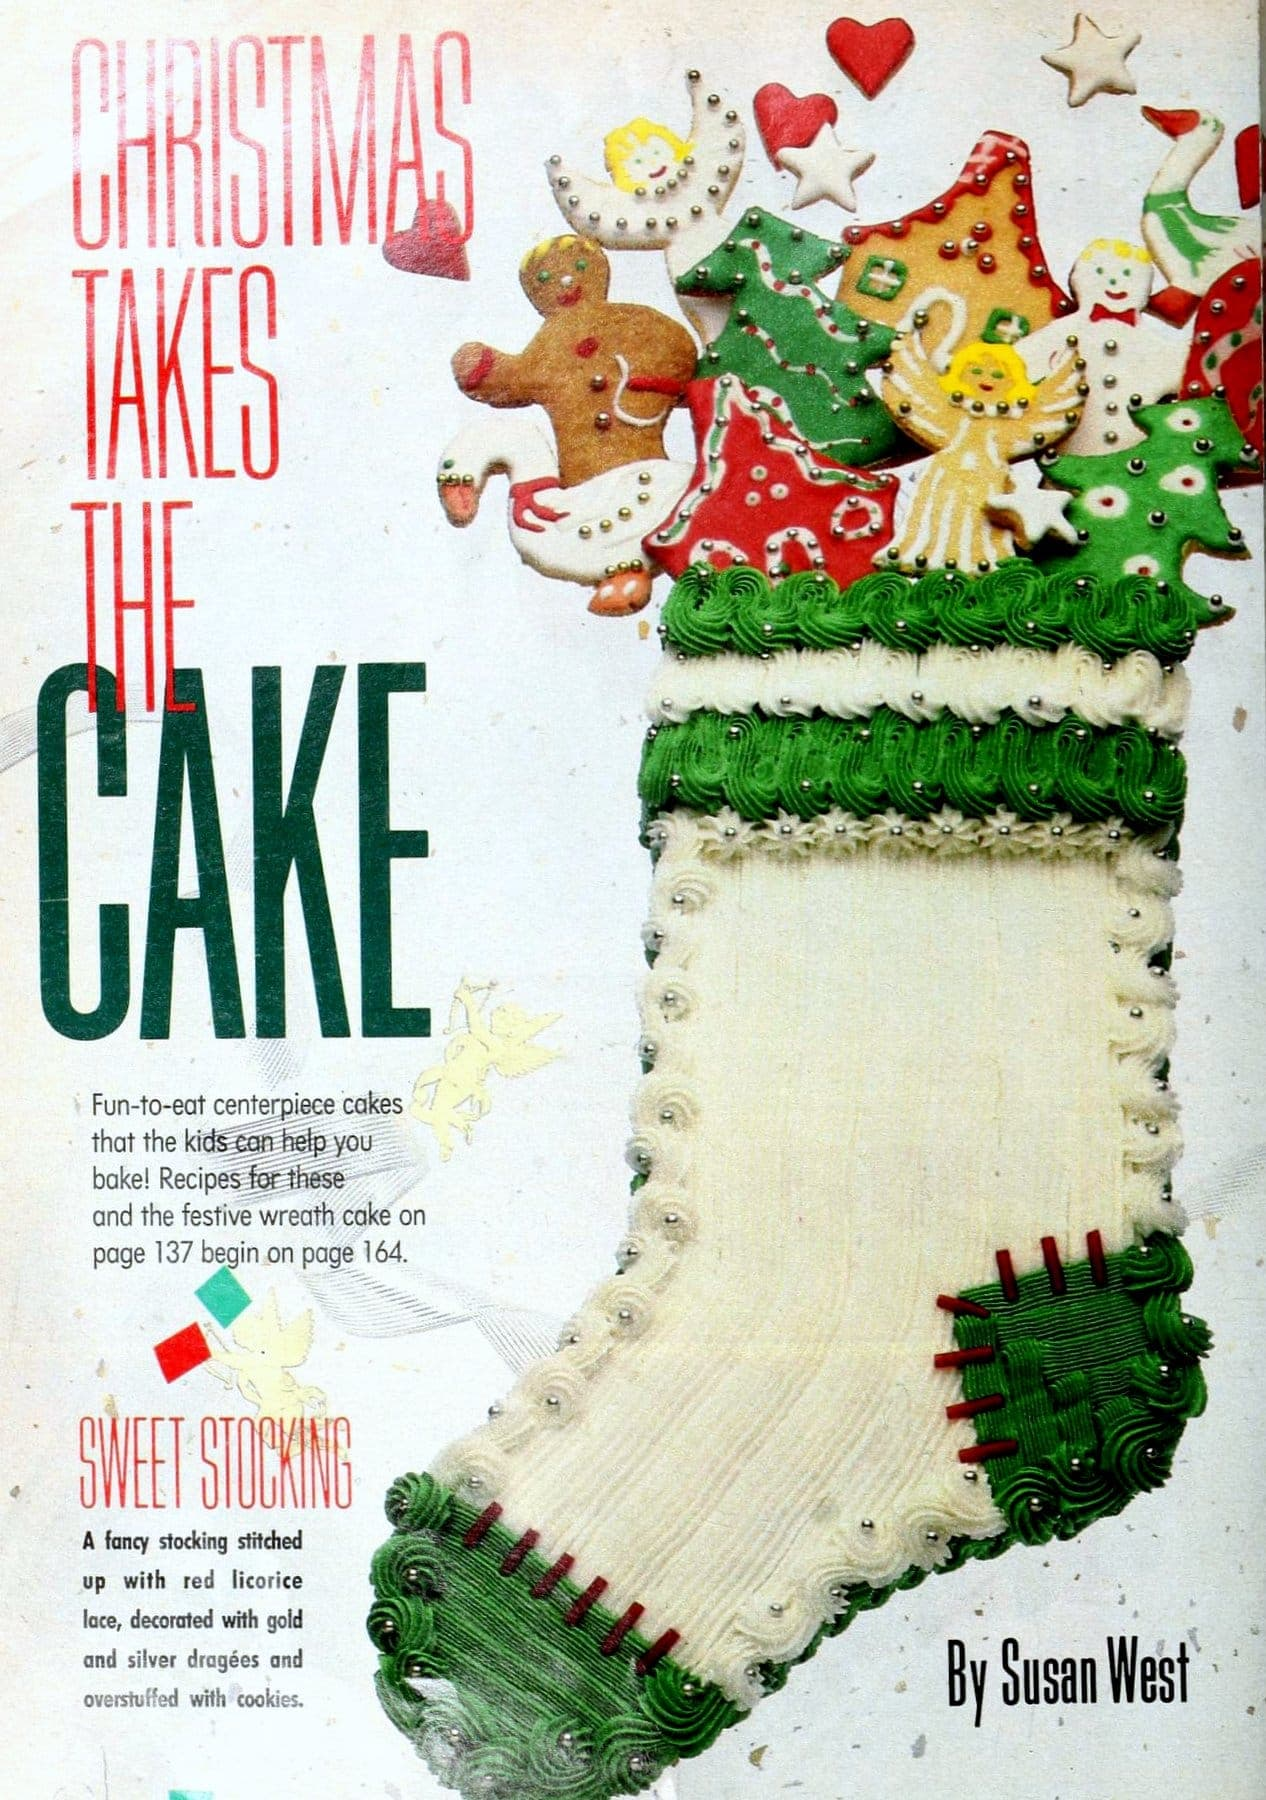 Cool and creative retro decorated Christmas cakes from the 1980s - Stocking